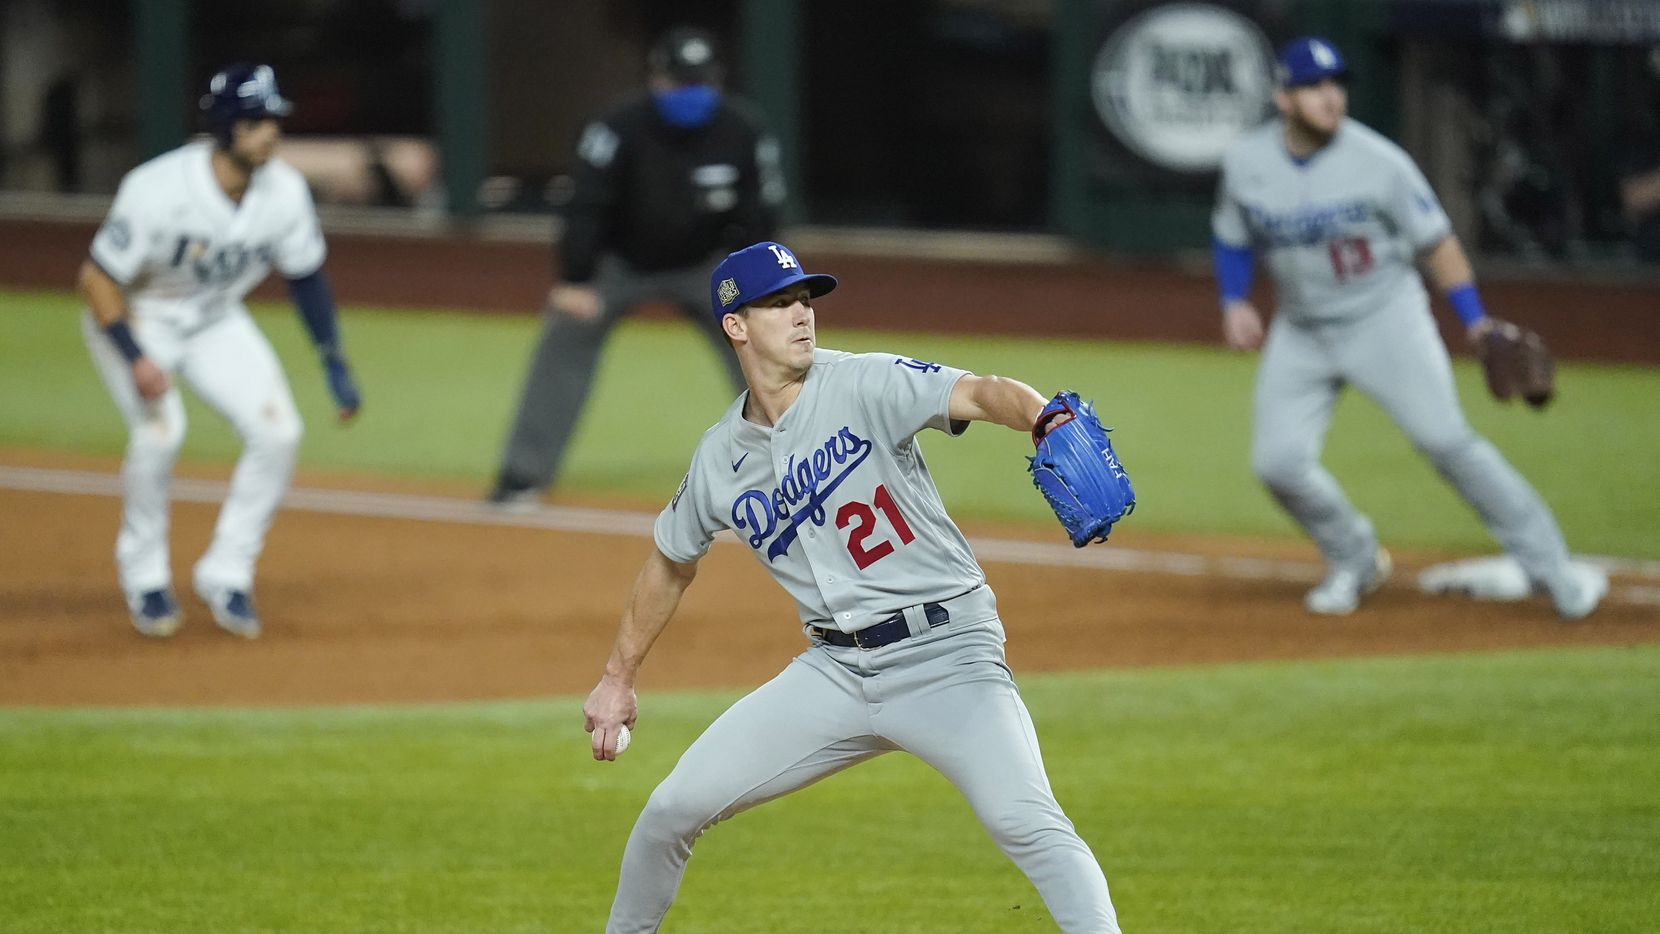 Los Angeles Dodgers starting pitcher Walker Buehler delivers during the third inning against the Tampa Bay Rays in Game 3 of the World Series at Globe Life Field on Friday, Oct. 23, 2020.